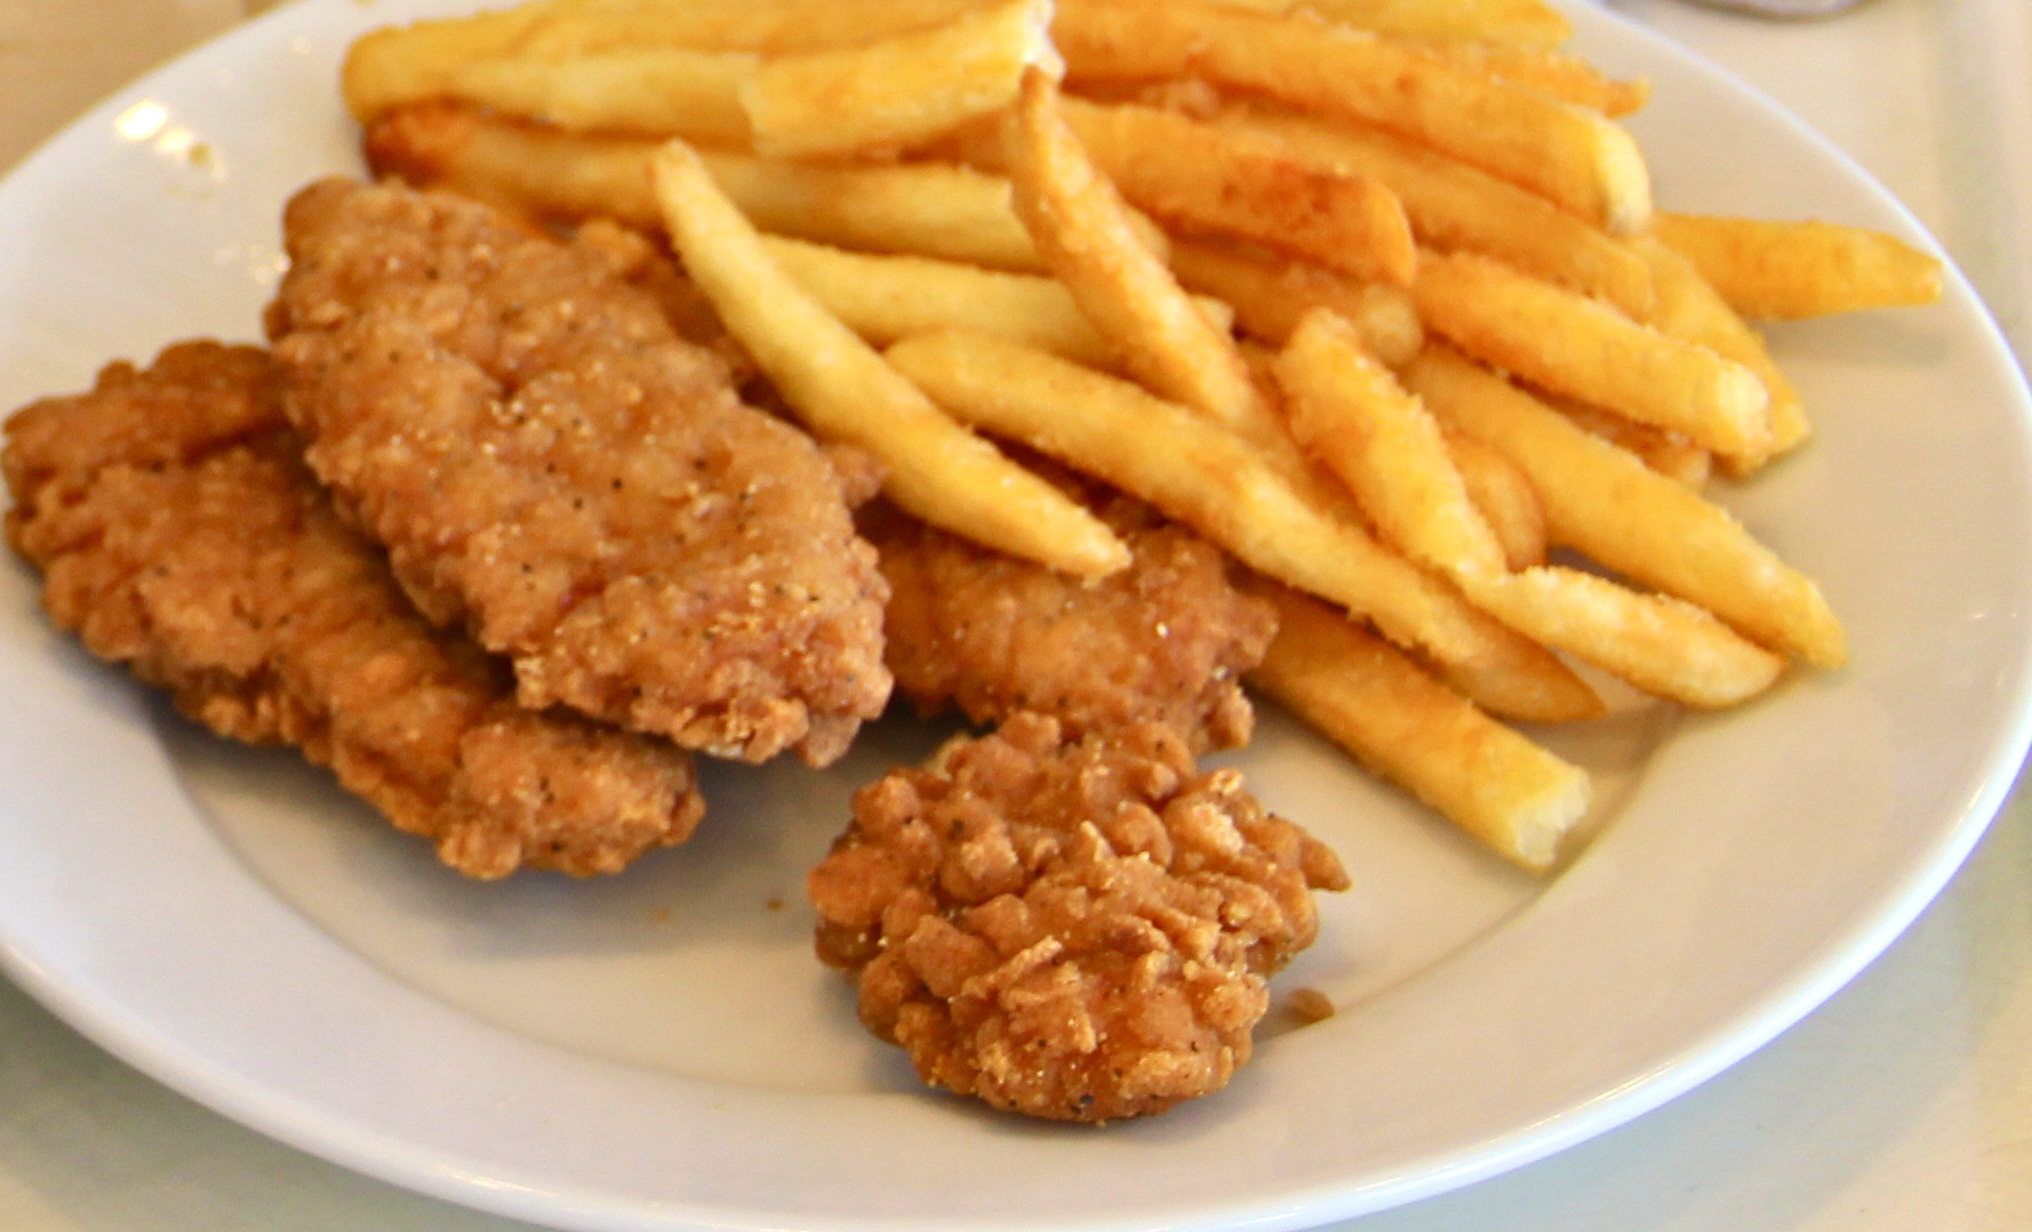 Free Cliparts Chicken Tenders, Download Free Clip Art, Free.